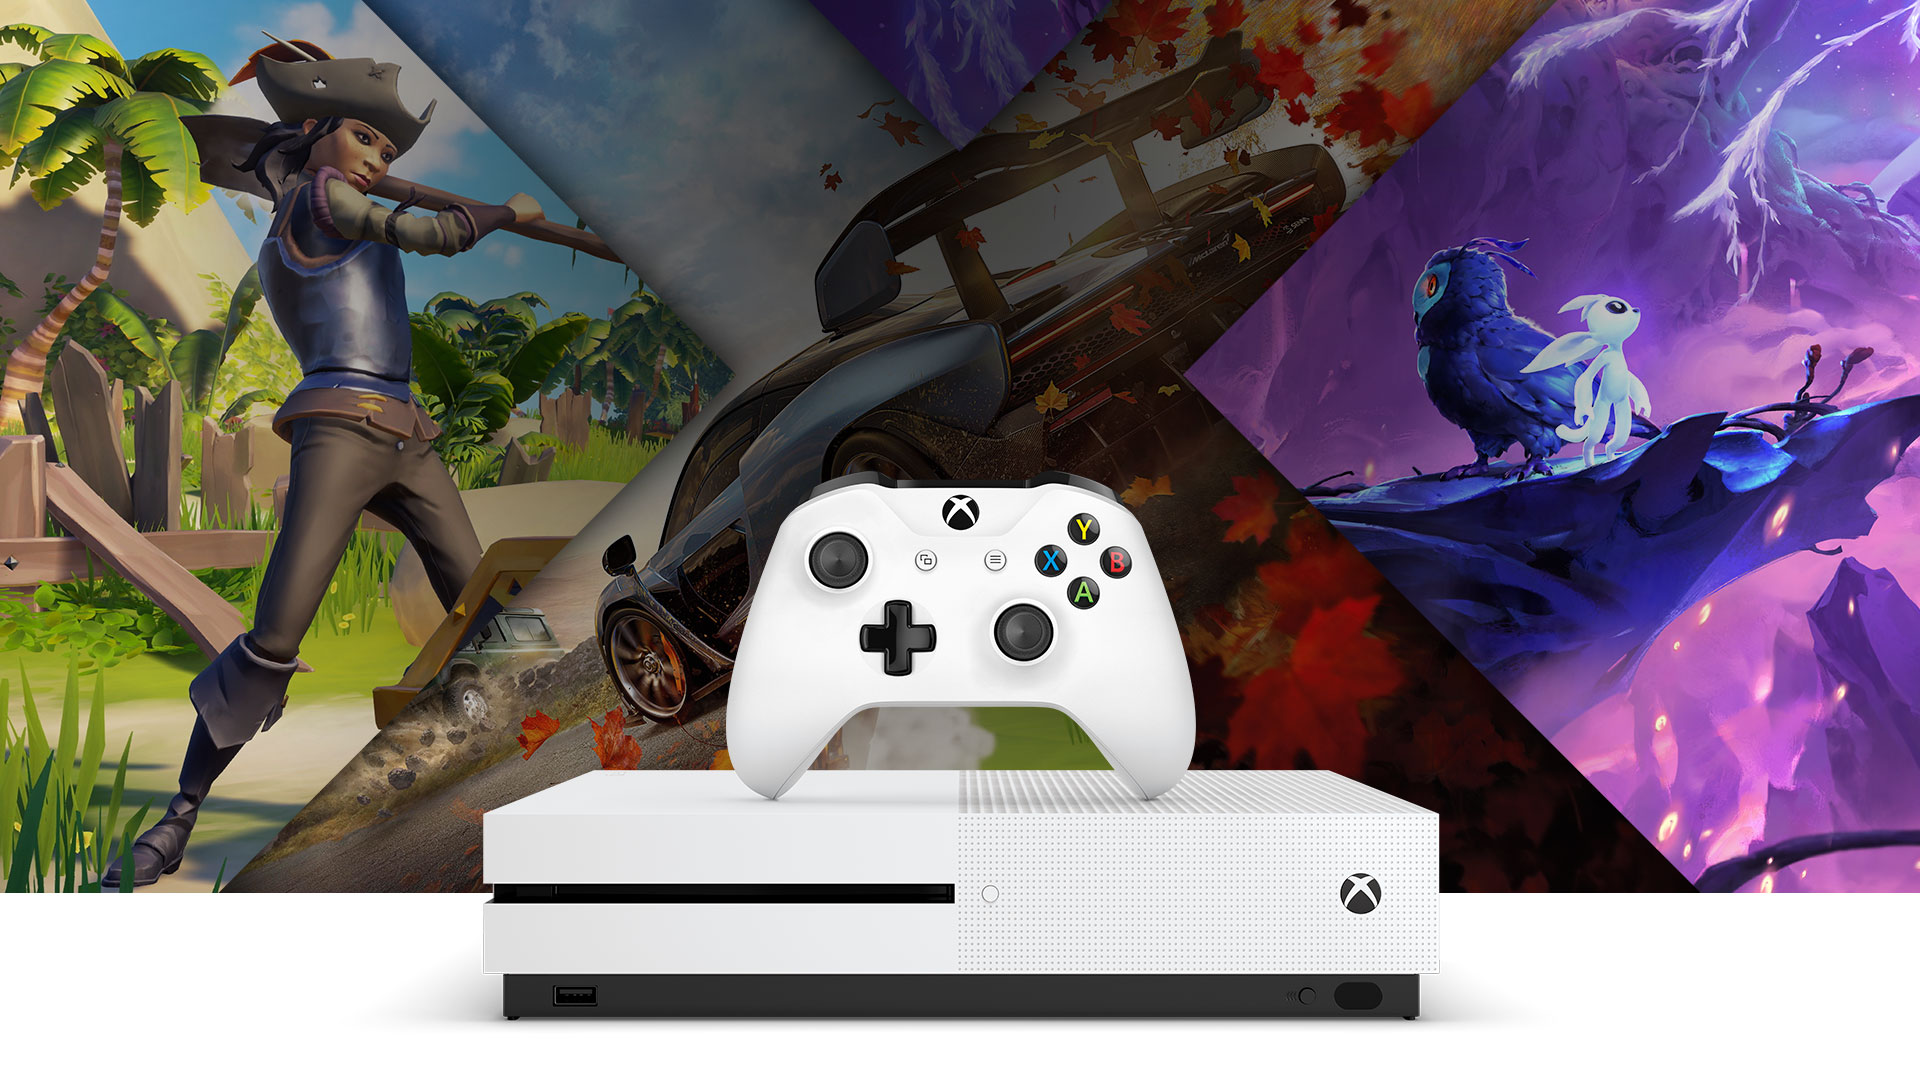 Sea of Thieves、Forza Horizon 4、Ori and the Will of Wisps のアートワークに囲まれ たXbox One S と White Wireless Controller の正面図